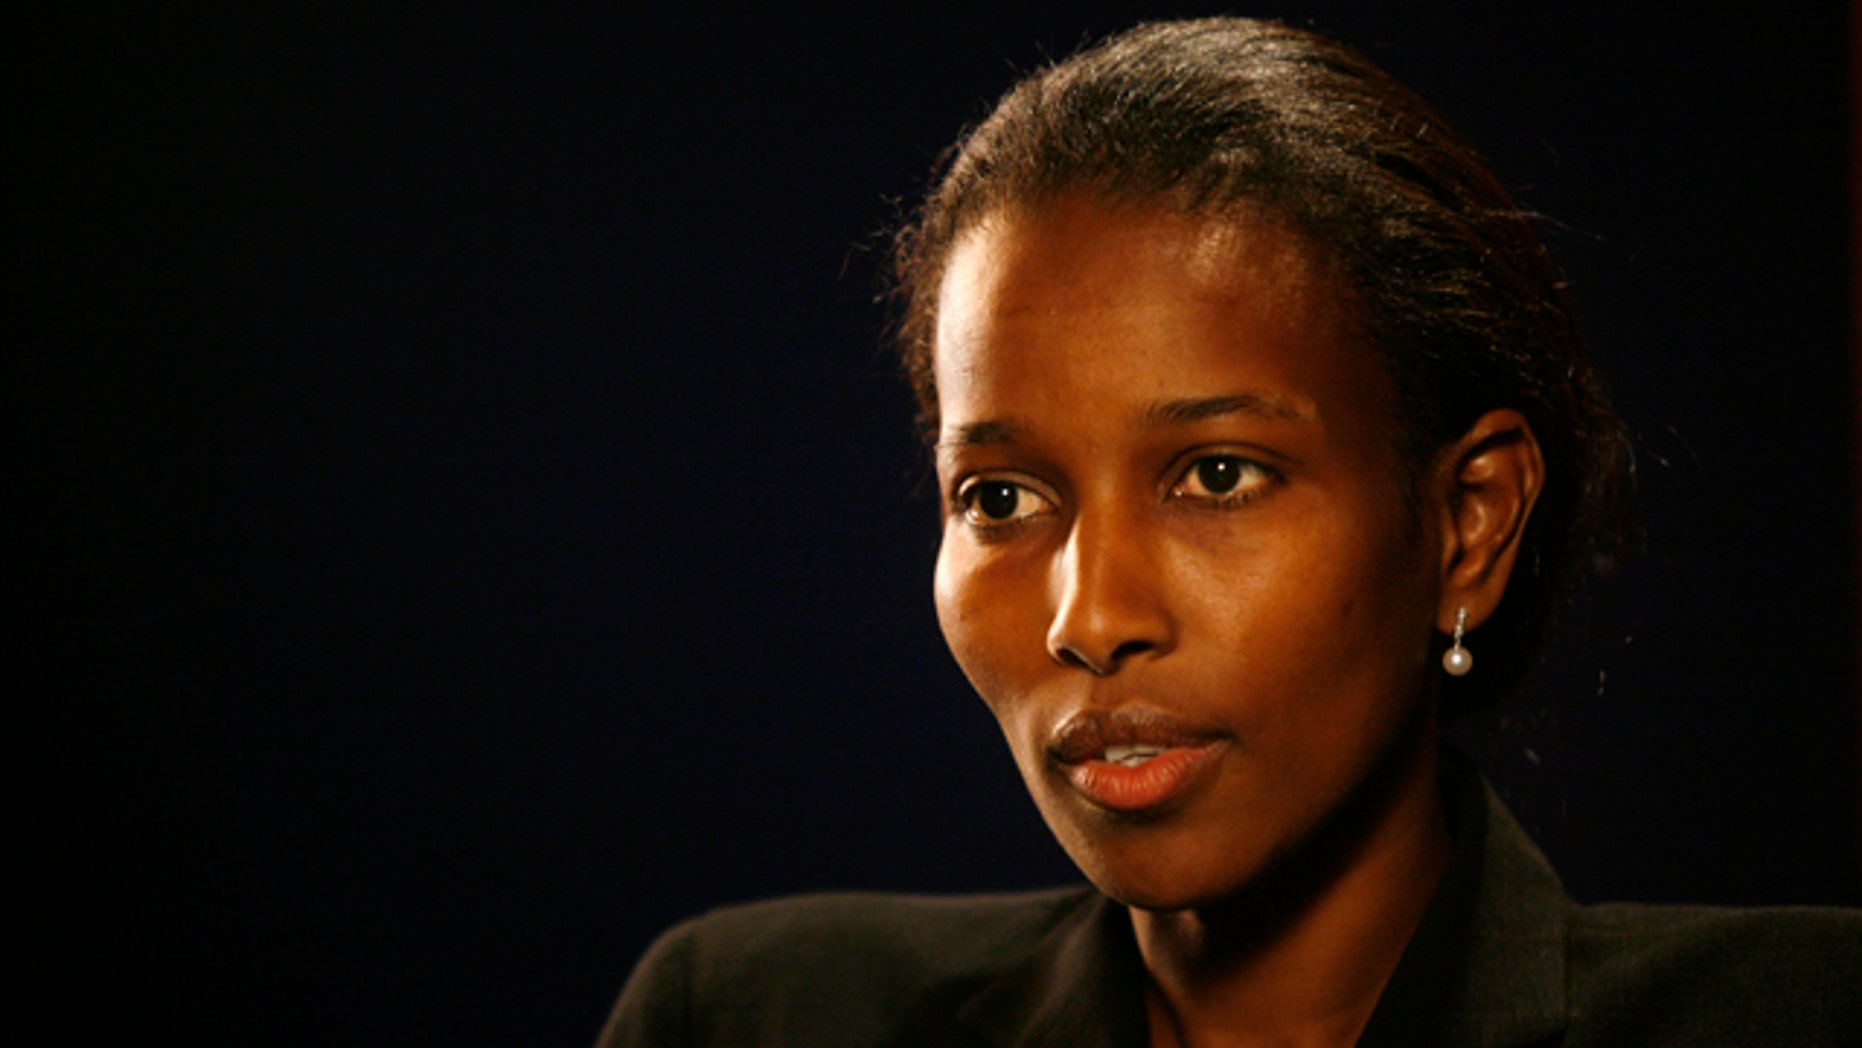 This 2007 photo shows Ayaan Hirsi Ali, writer of the film 'Submission,' which criticized the treatment of women in traditional Islam and led to the murder of Dutch film director Theo Van Gogh. Brandeis University announced Tuesday it was withdrawing a planned honorary degree from Ali. (AP Photo/Shiho Fukada)